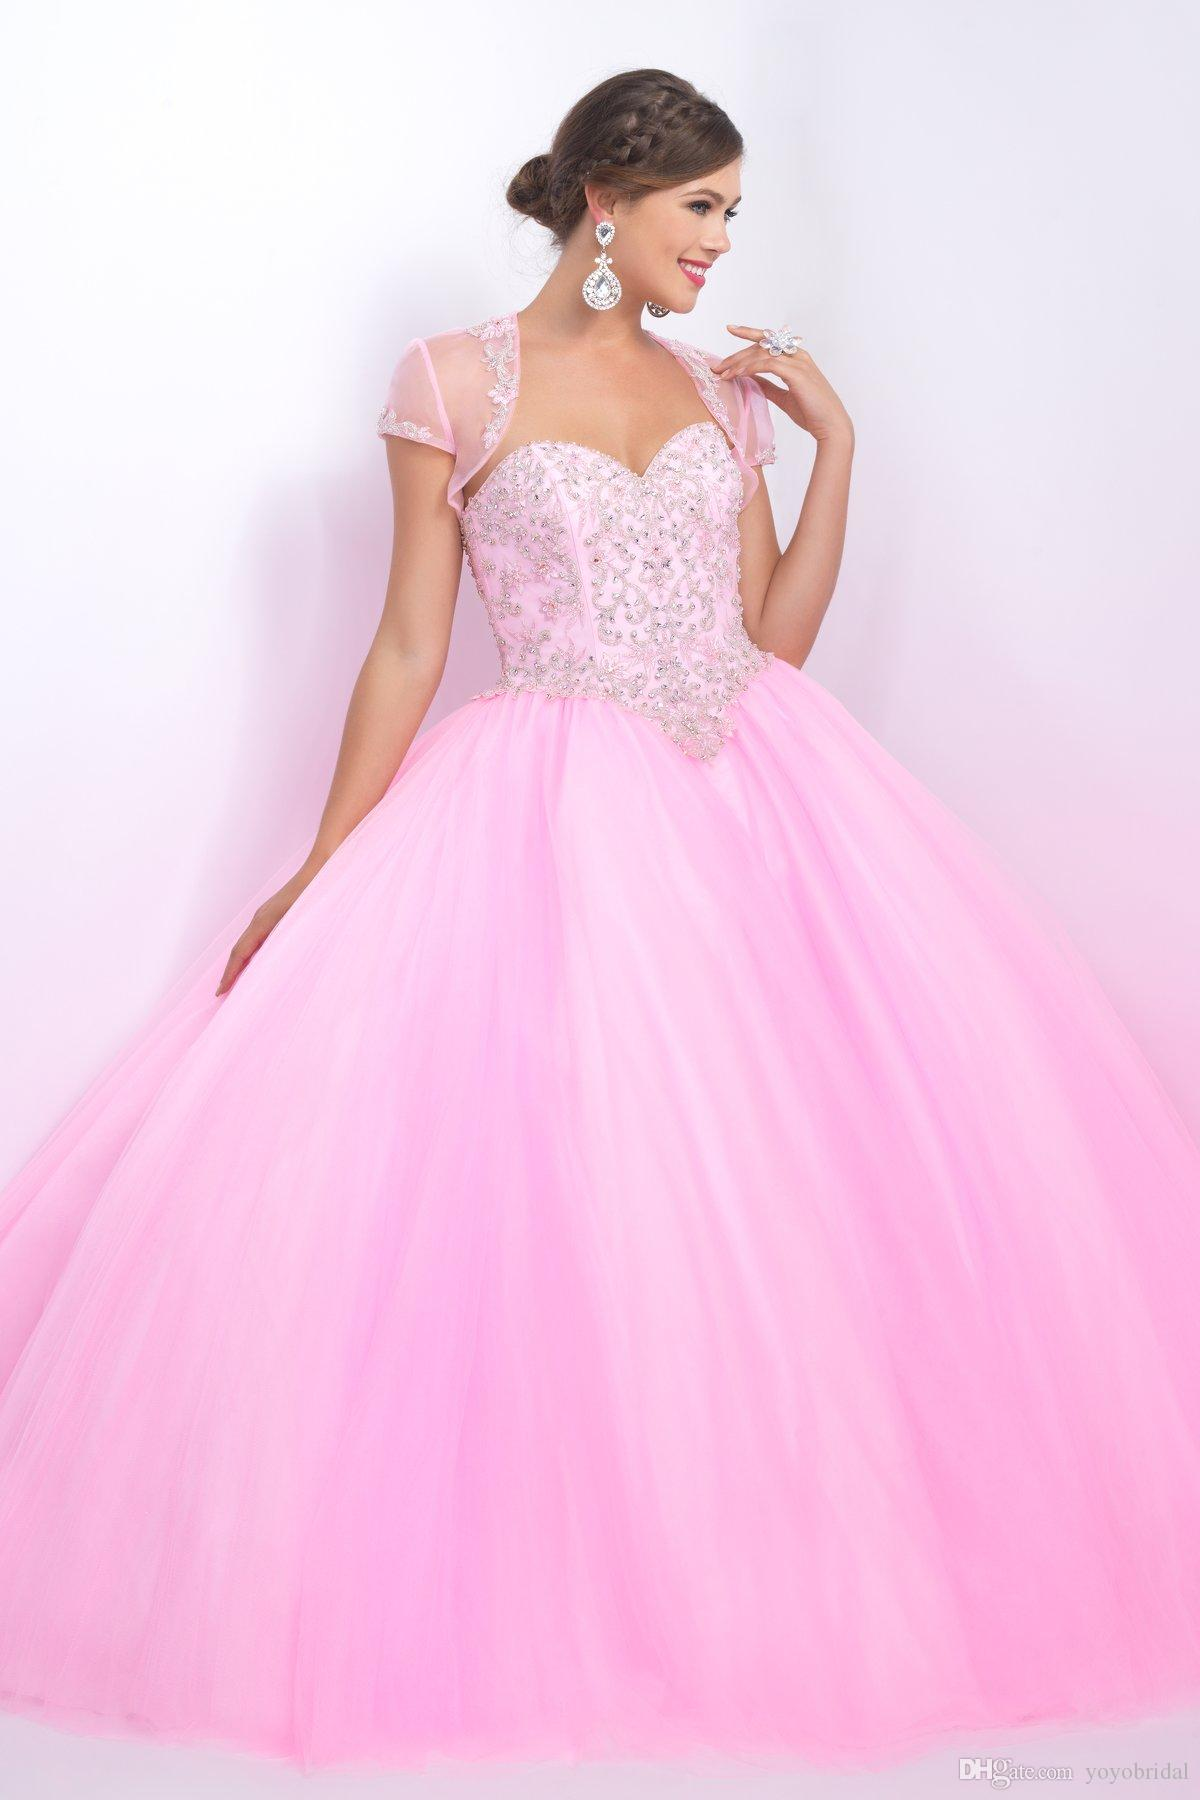 Quinceanera Dresses Prom Dresses Debutante - Prom Dresses With Pockets